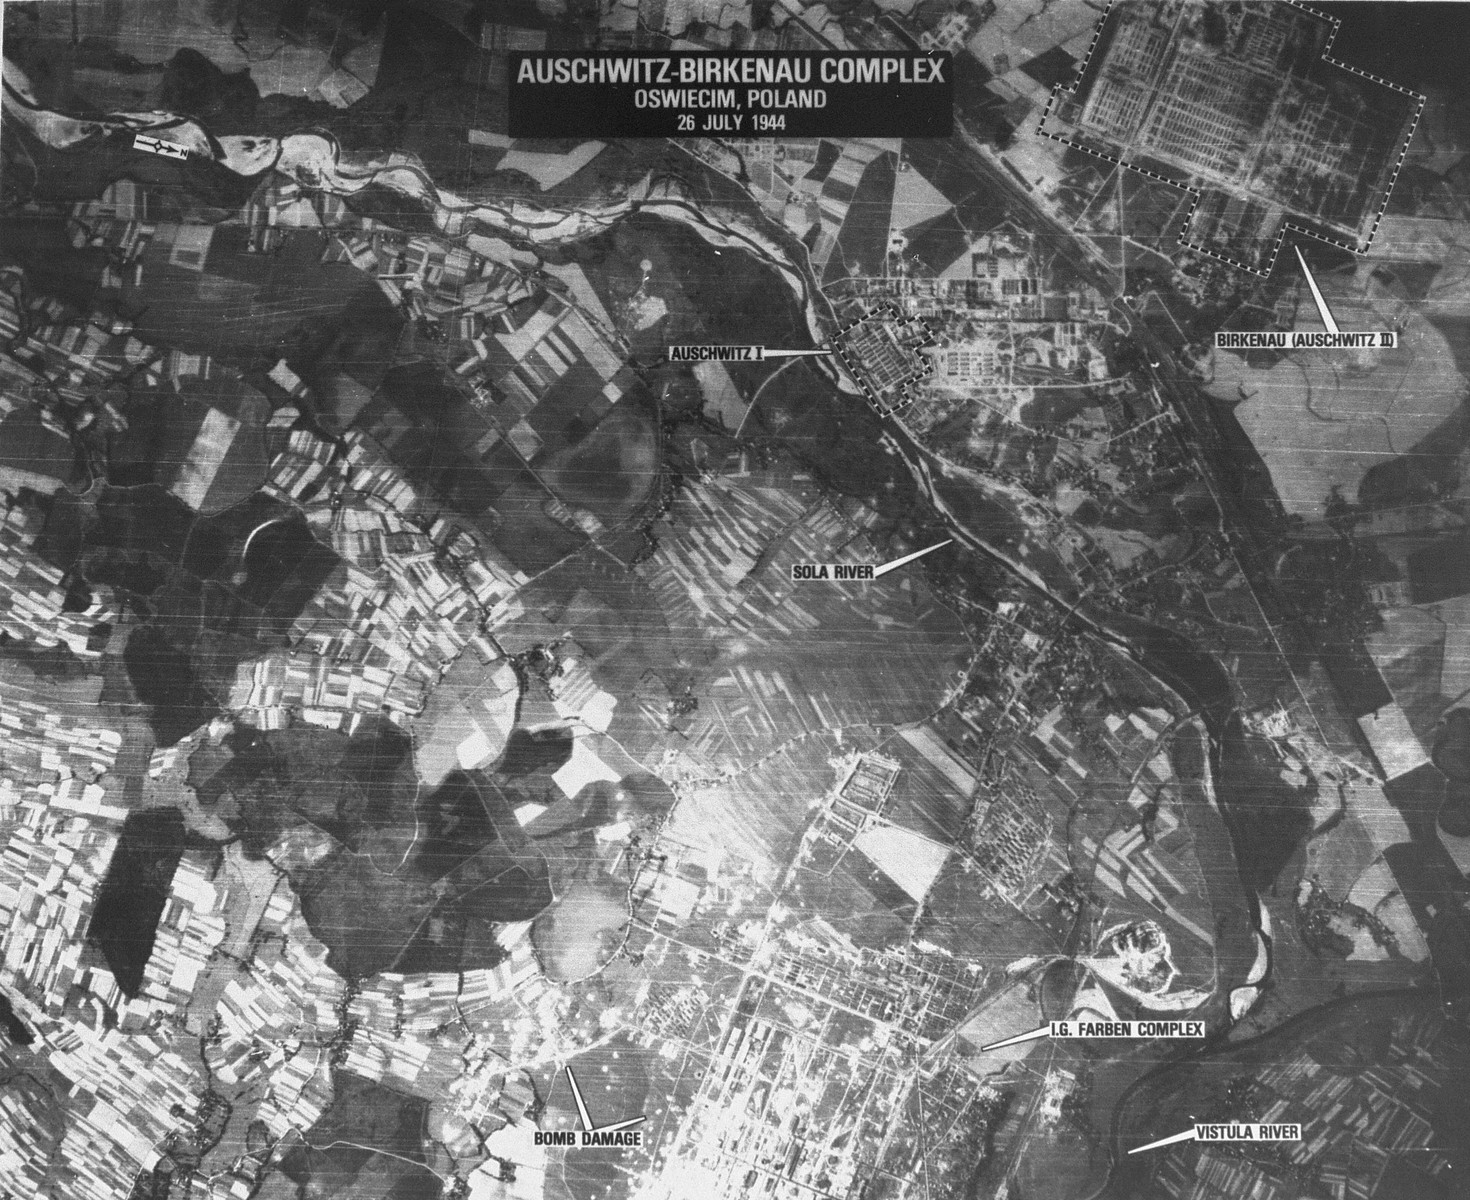 An aerial reconnaissance photograph  showing  Auschwitz II (Birkenau),  including the I.G. Farben plant.